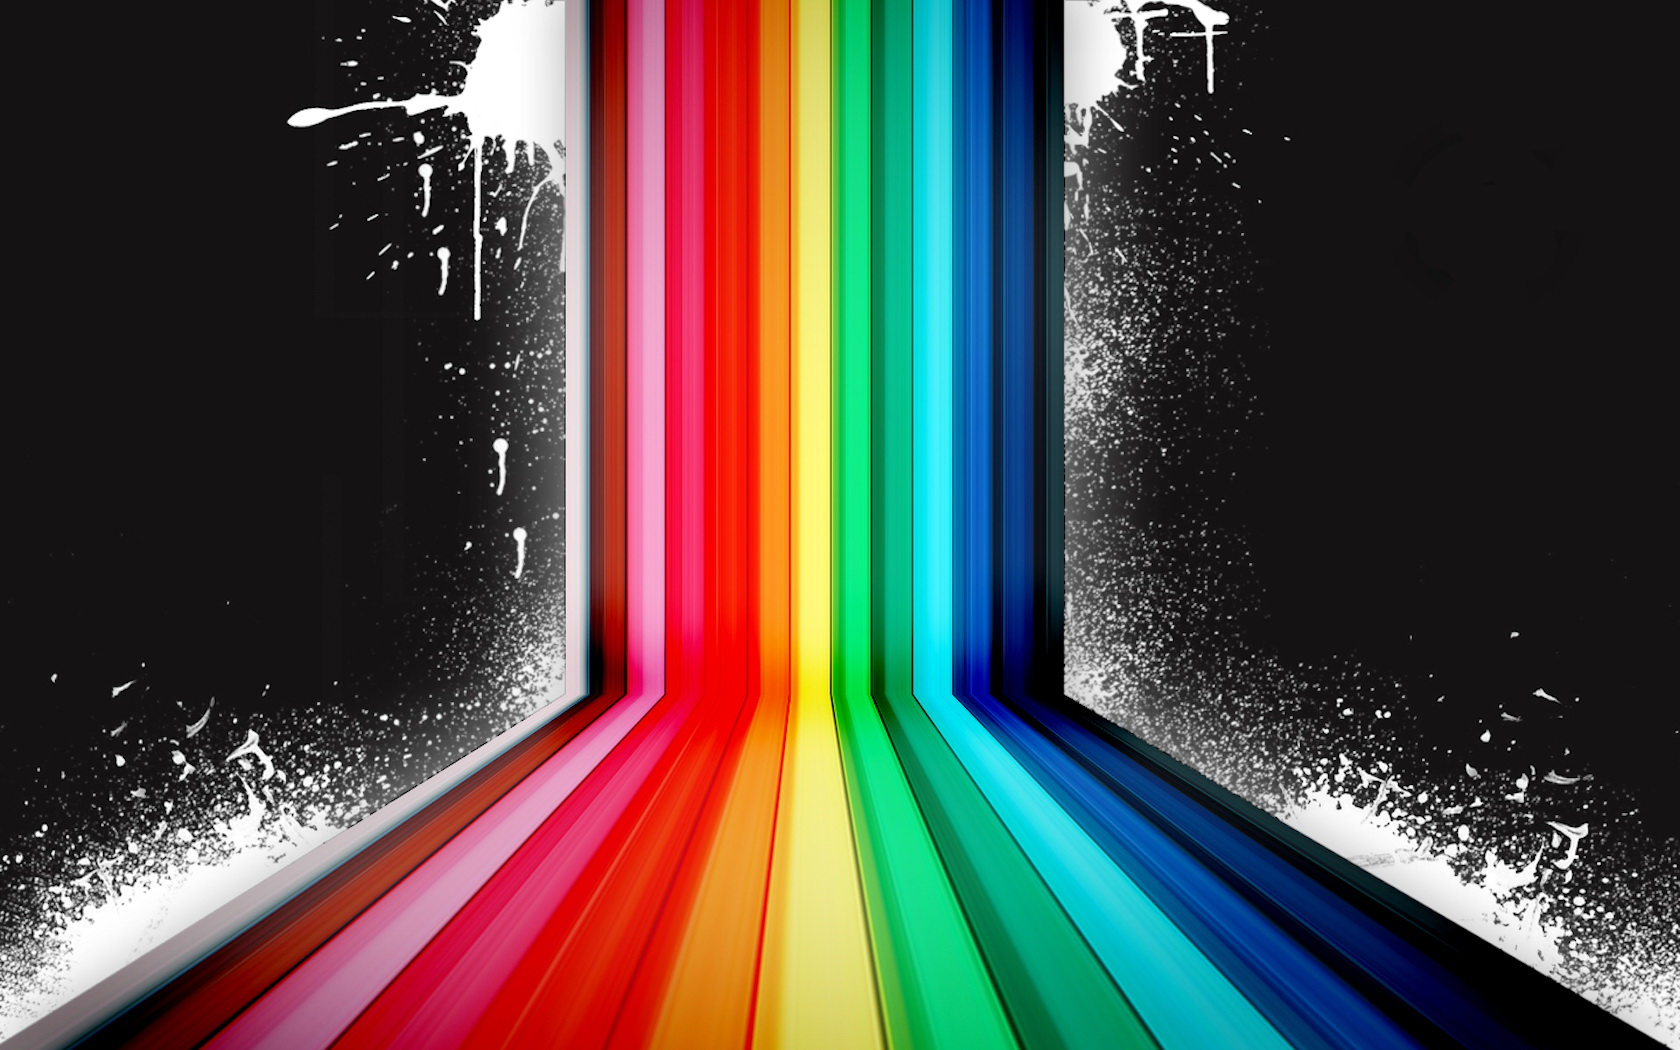 Rainbow Abstract Desktop Backgrounds Hd Art Images Dark